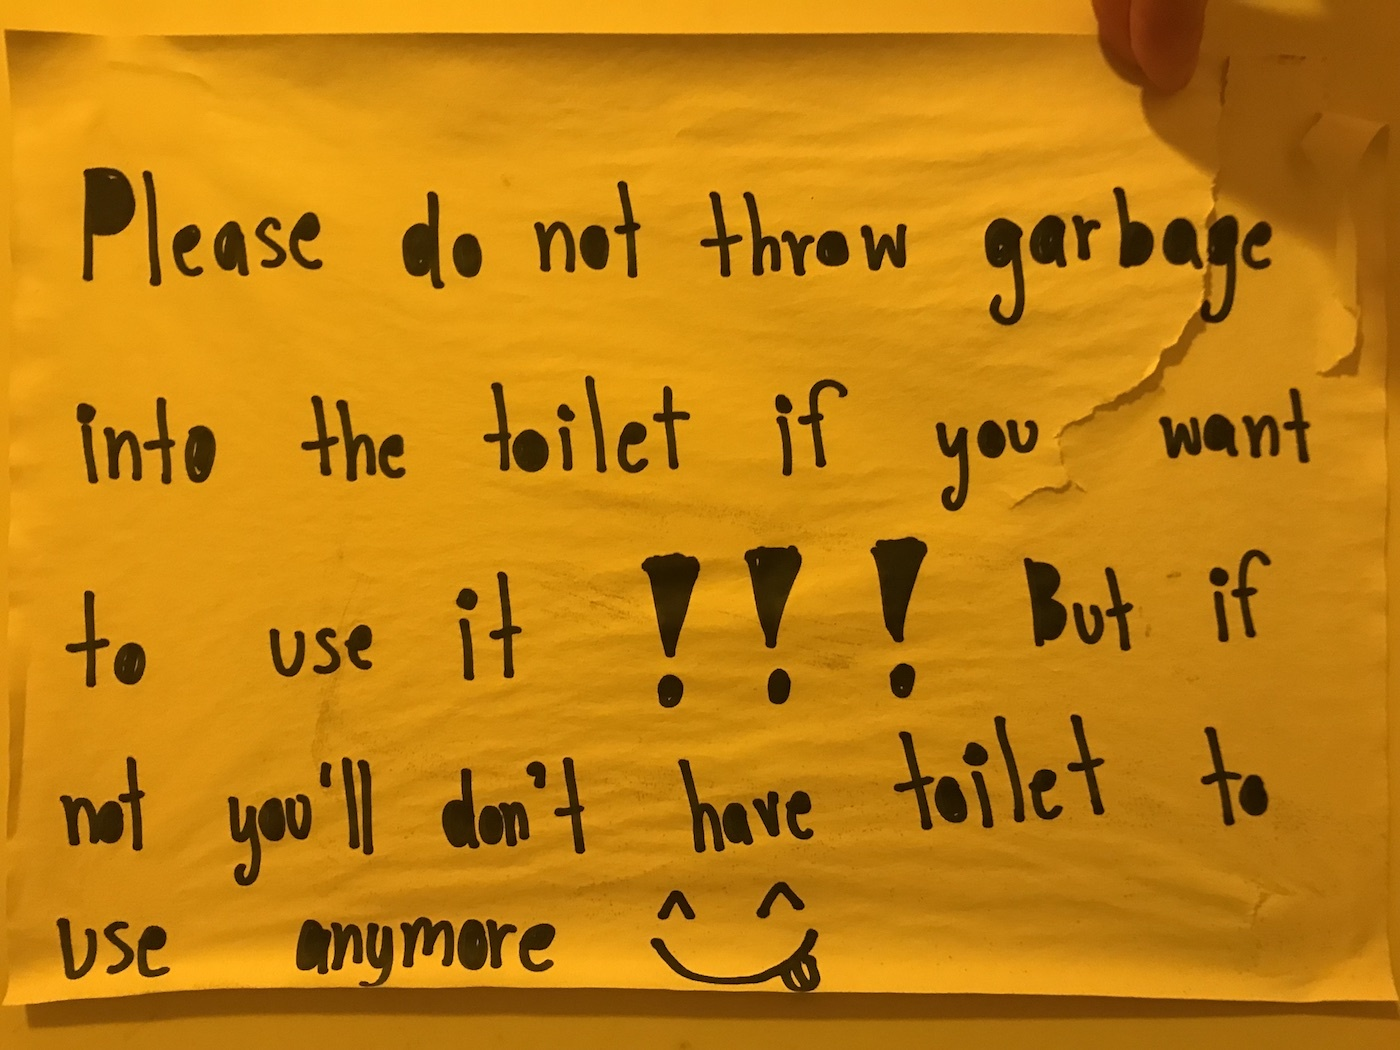 Another sign saying to not flush tissue in the toilet